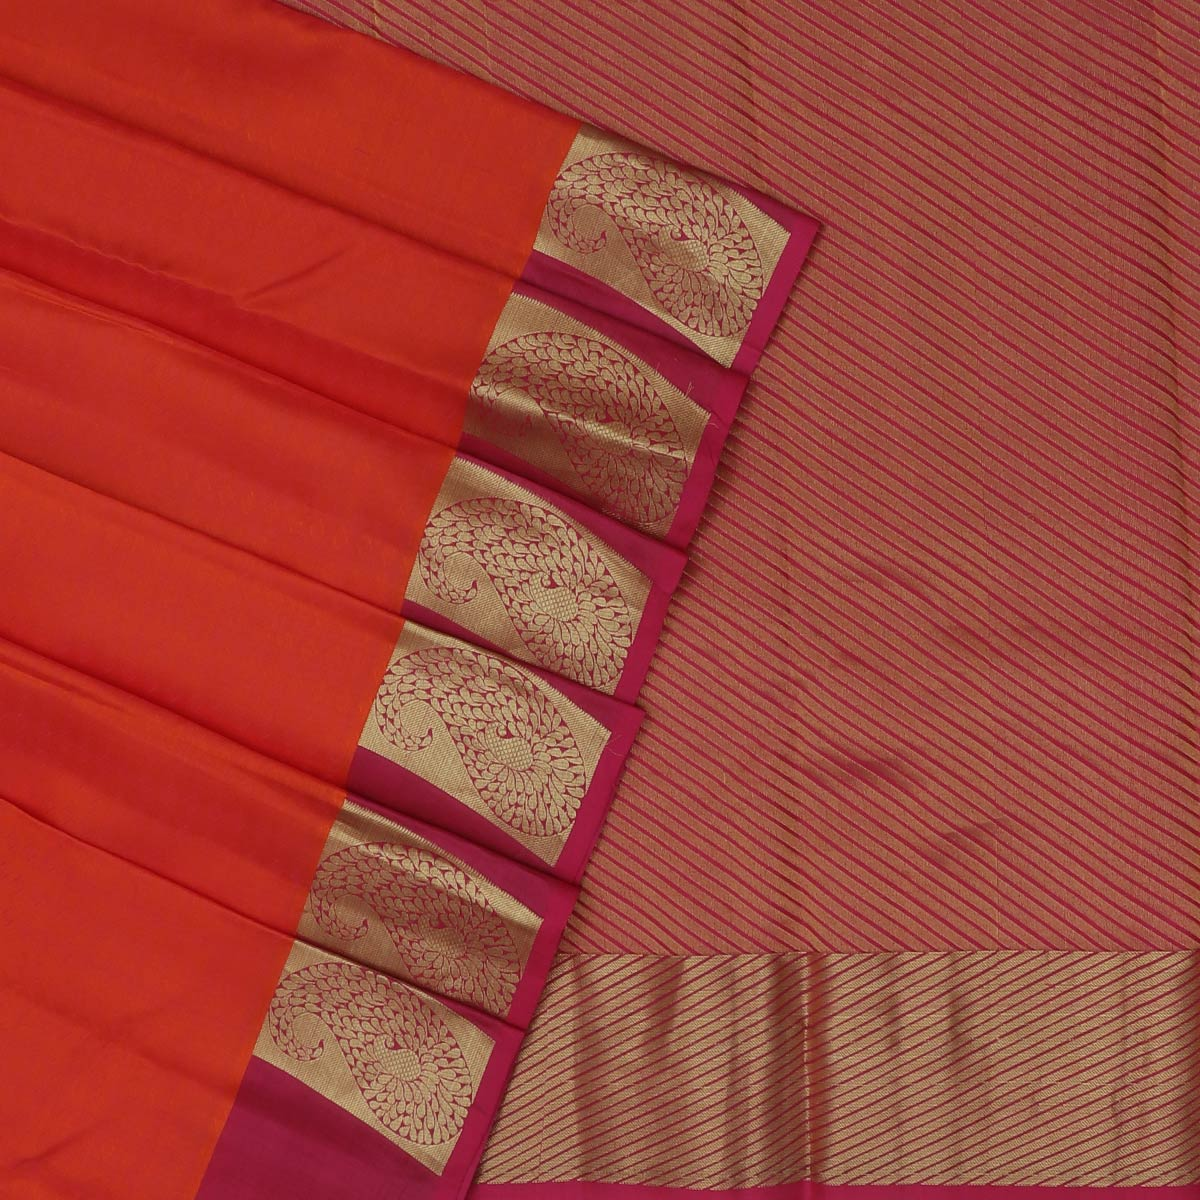 Kanjivaram Silk Saree Orange with Pink Dual Shade and Dark Pink with Mango Zari border